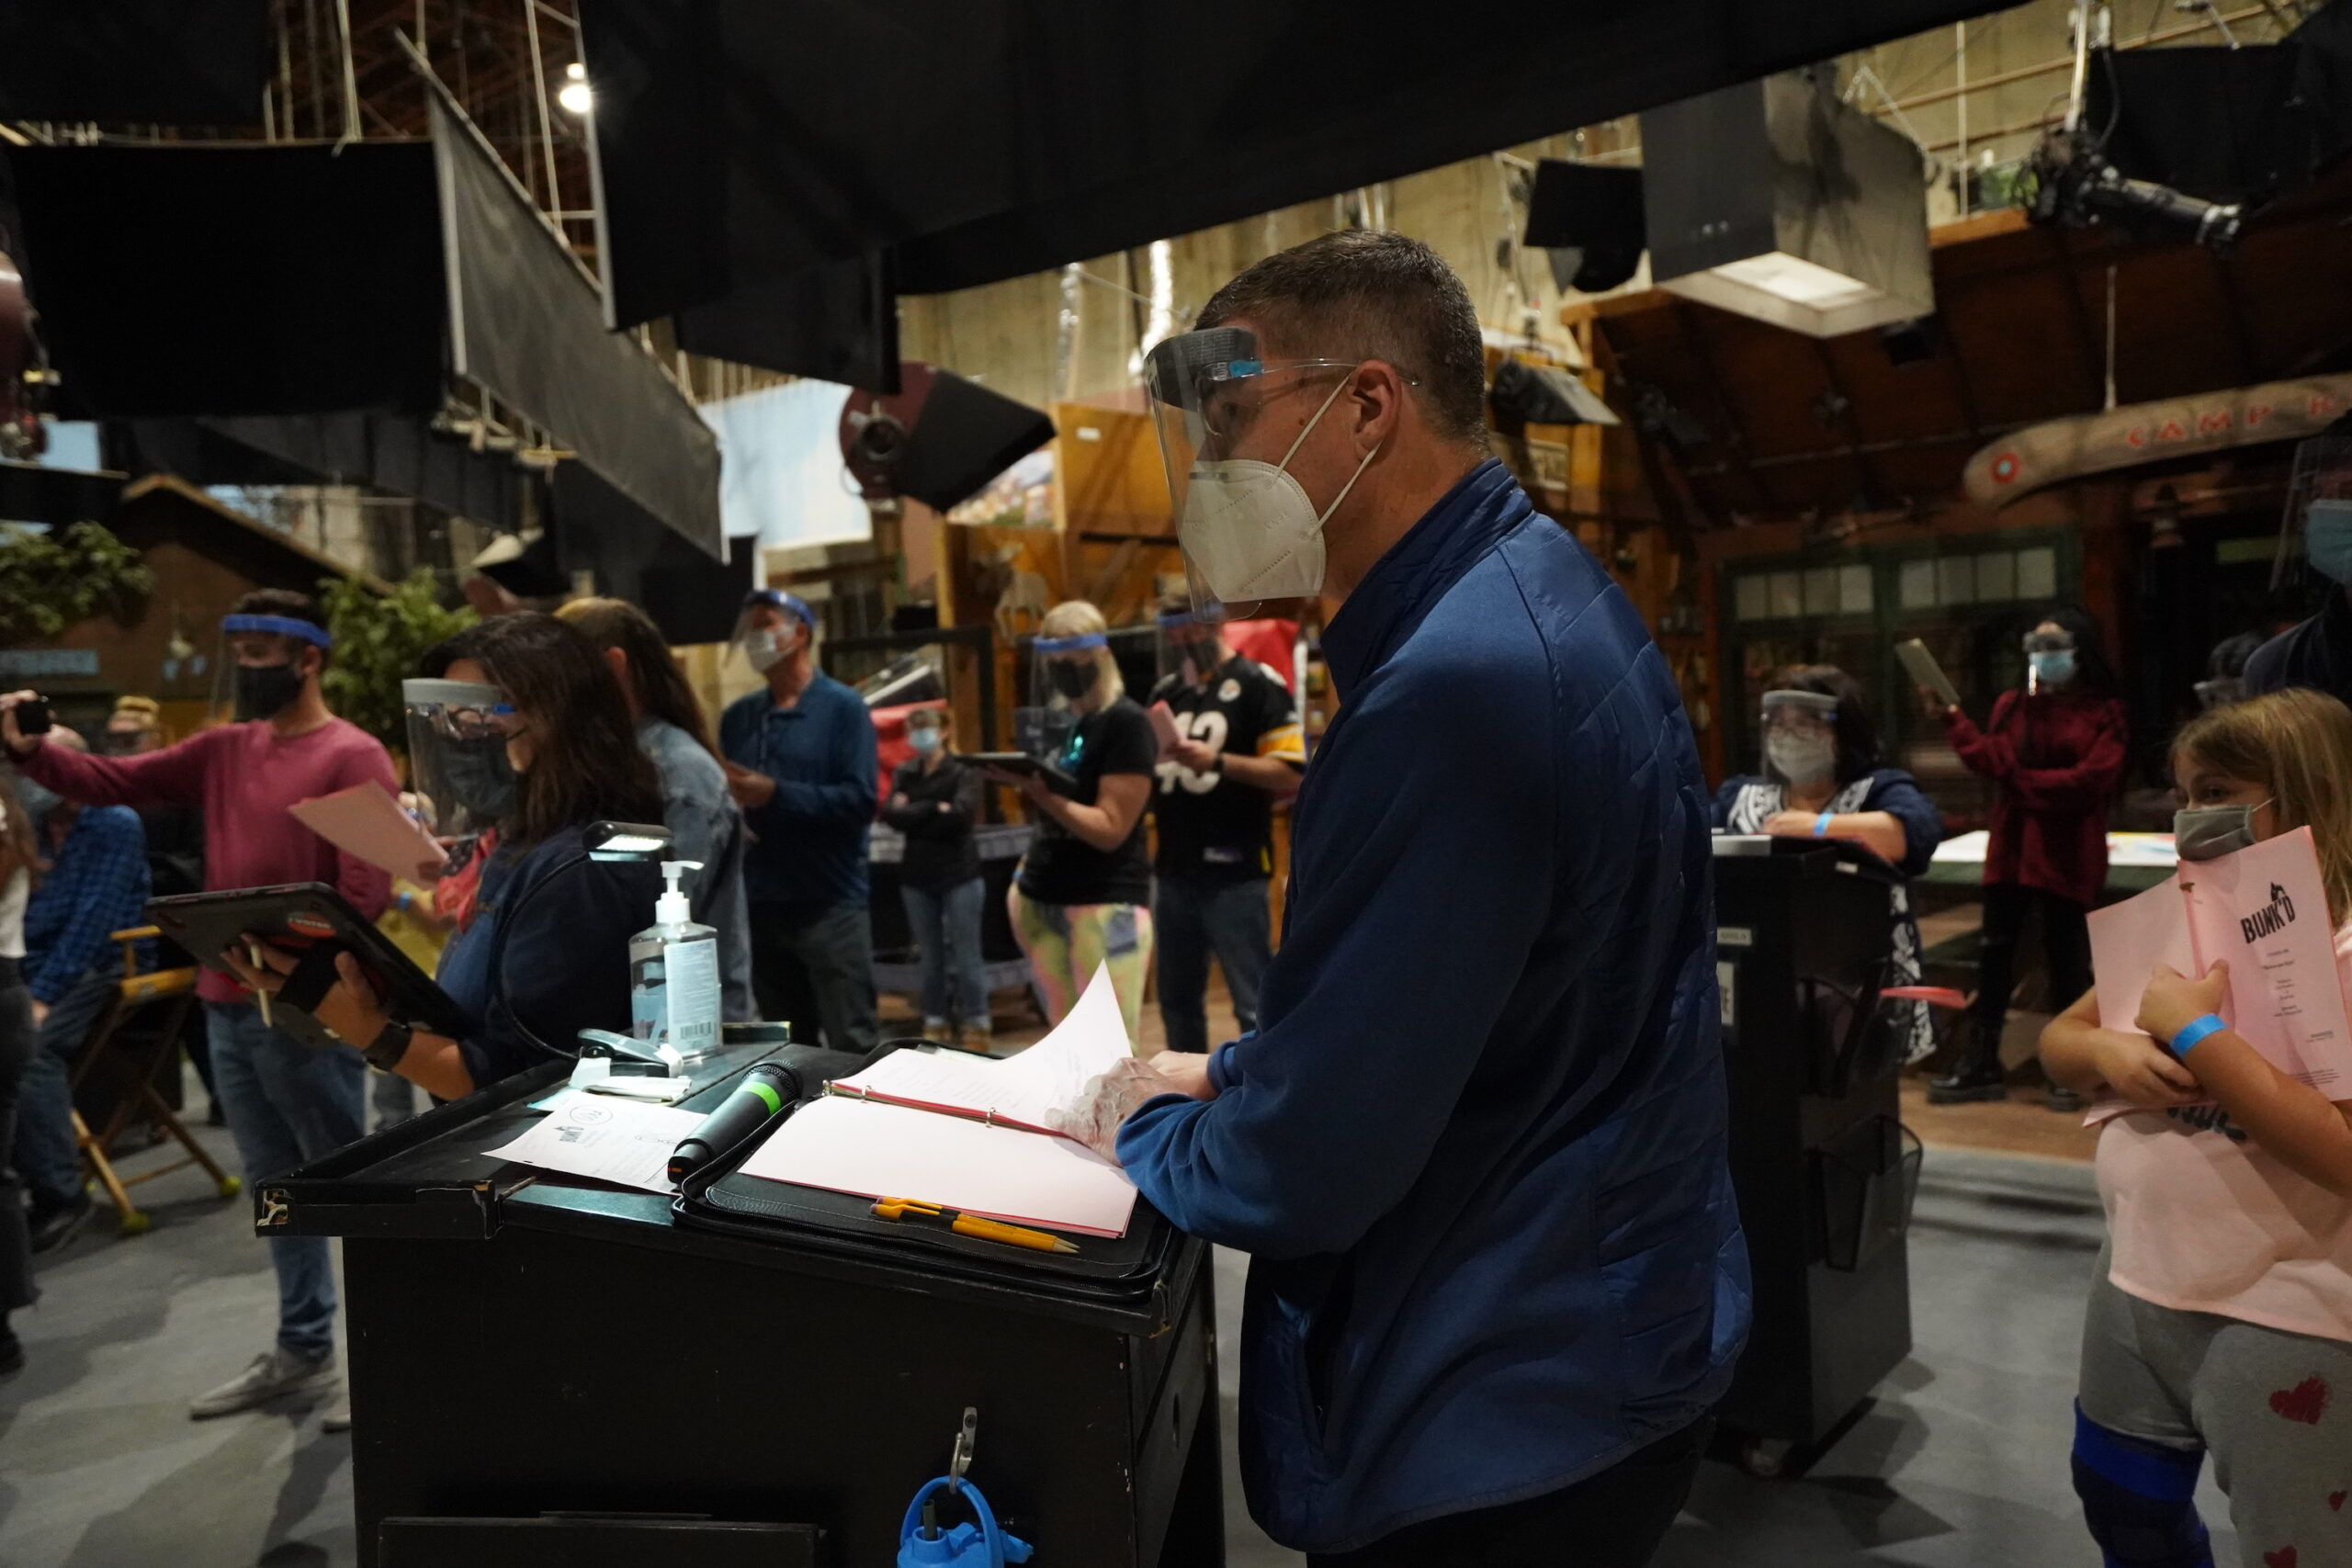 During a Disney network run-thru. All attendants socially distanced. Crew was pared down to the smallest number possible; non-essential production, like the writers who haven't been on set since the start of the 5th season, have been Zooming into work.. [Photo: Lilian Manansala]